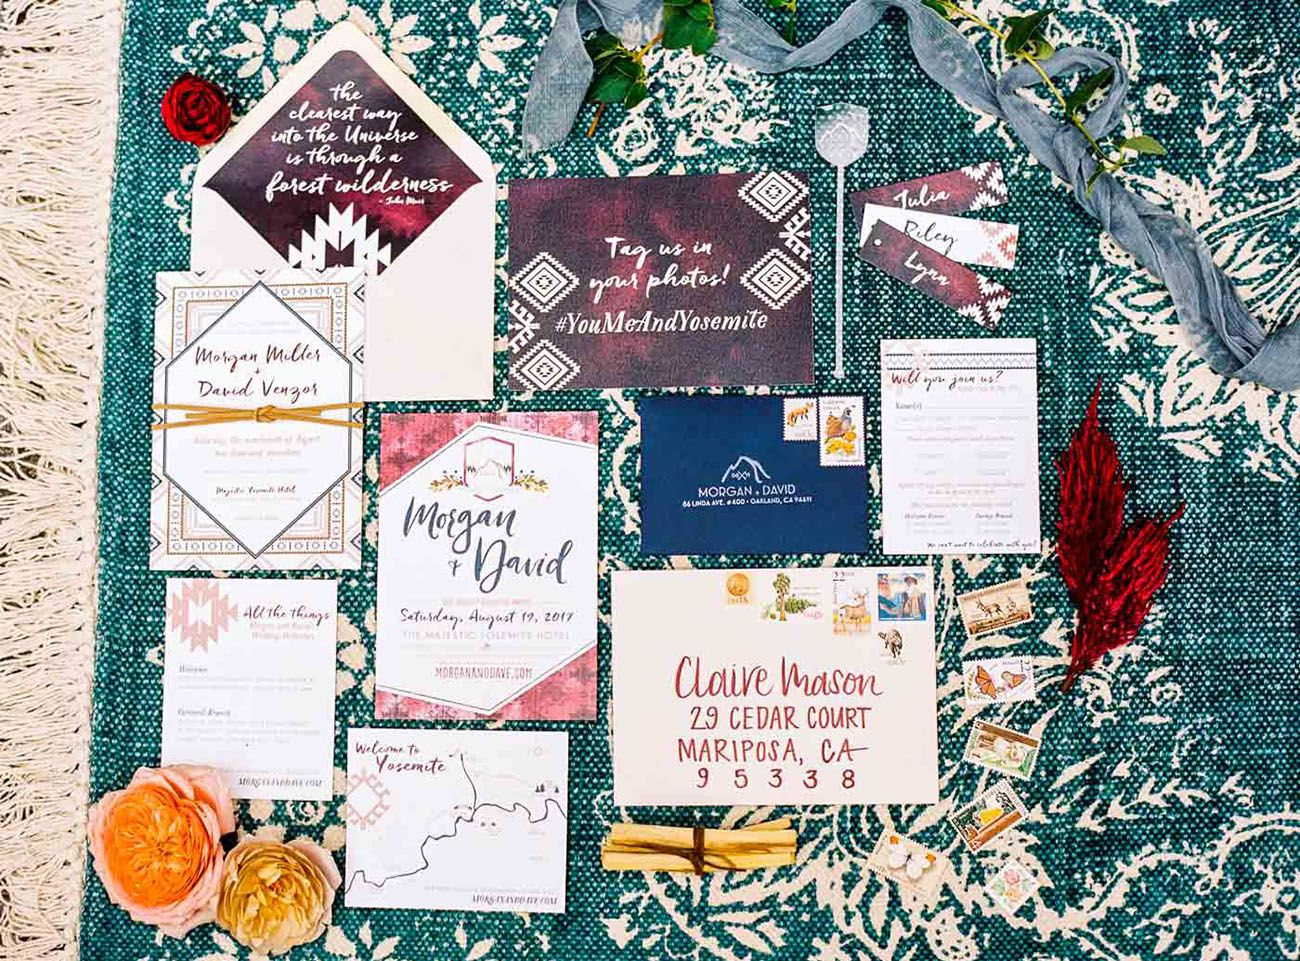 Yosemite Wedding Invitations: When A Wedding Planner Gets Married: Bohemian-Inspired